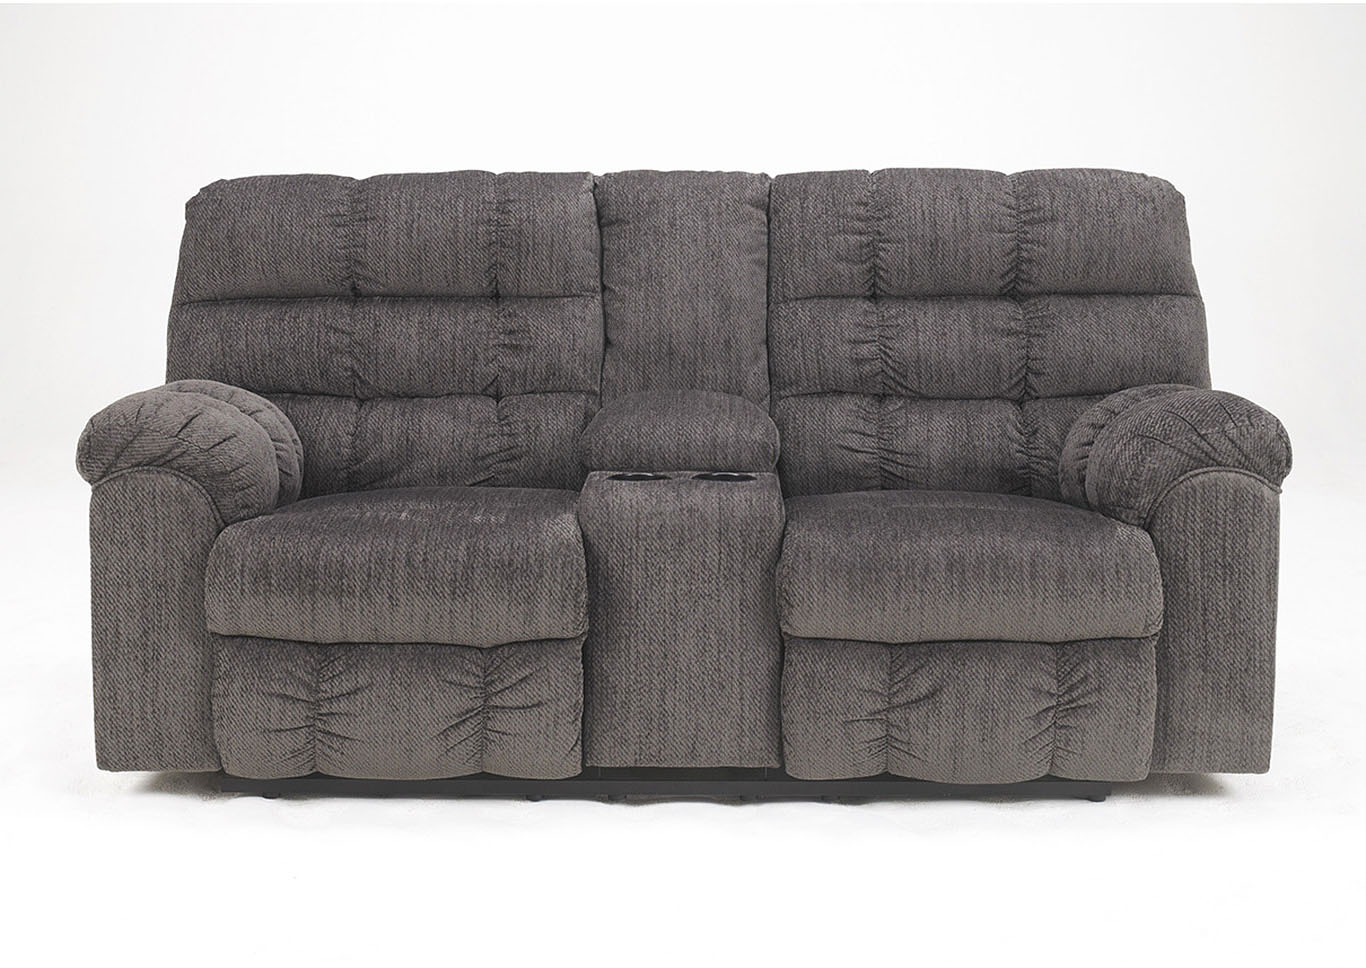 Acieona Slate Double Reclining Loveseat W/Console,Signature Design By Ashley